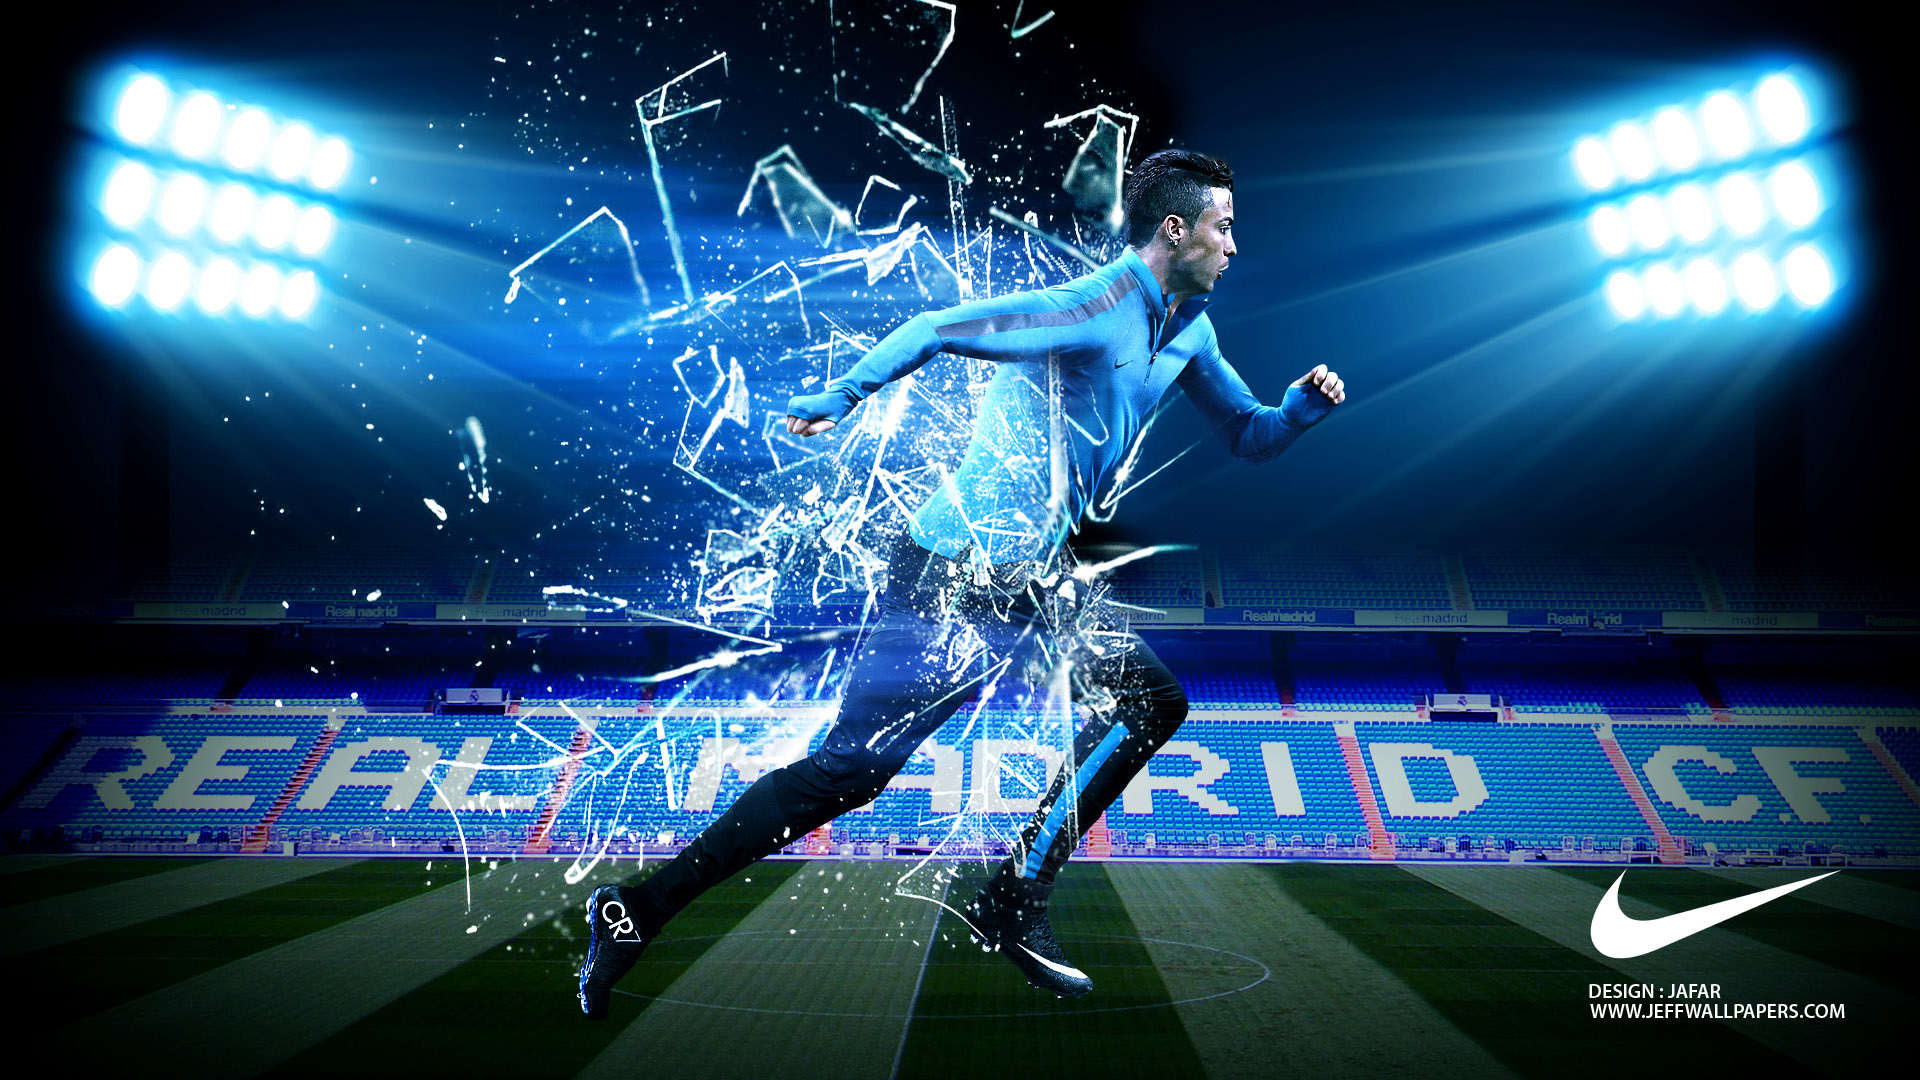 Cr7 Wallpapers 2015 1920x1080